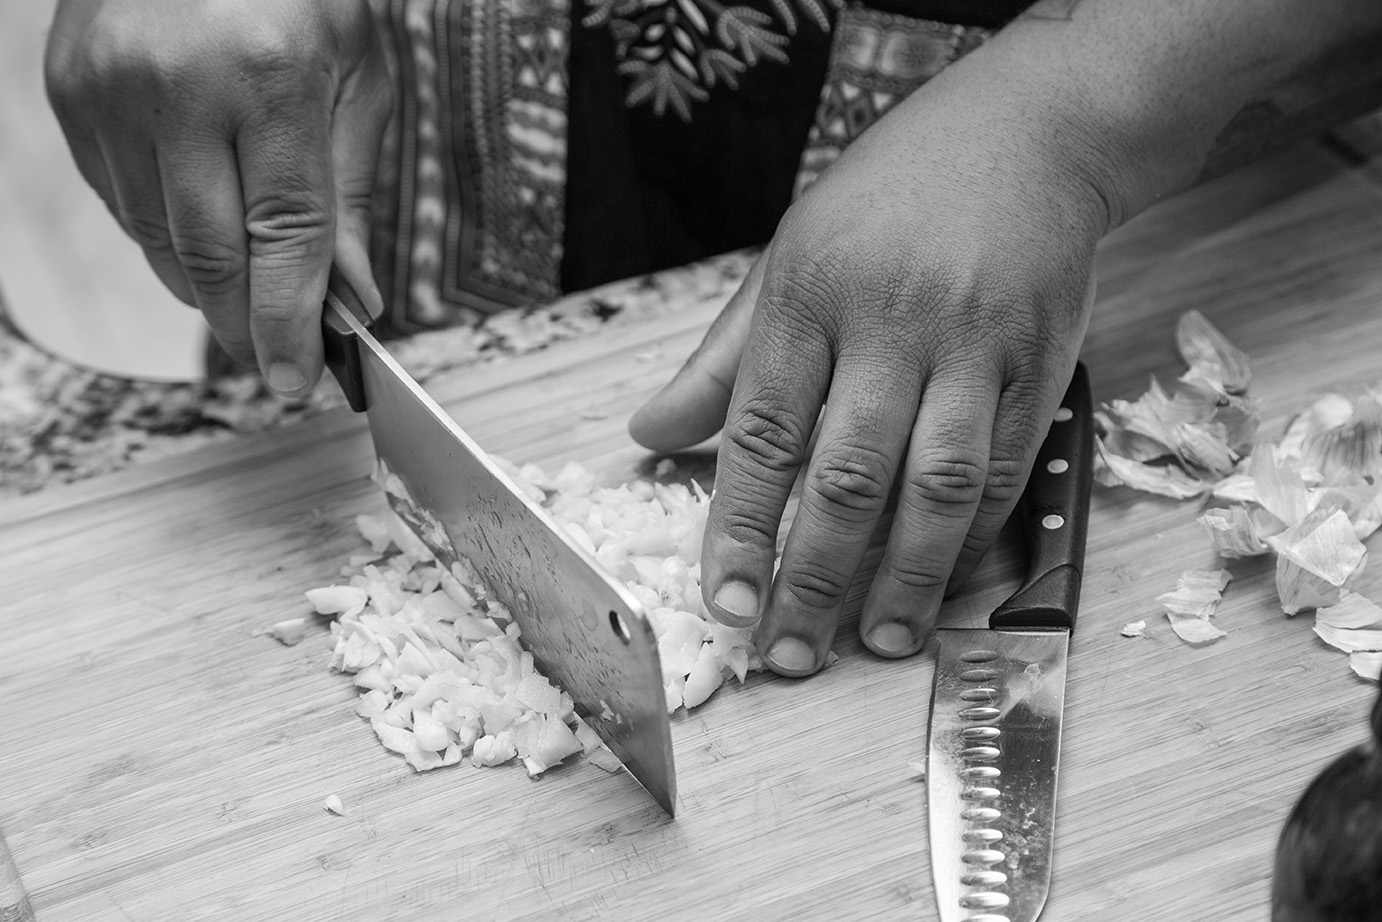 Garlic chopping.